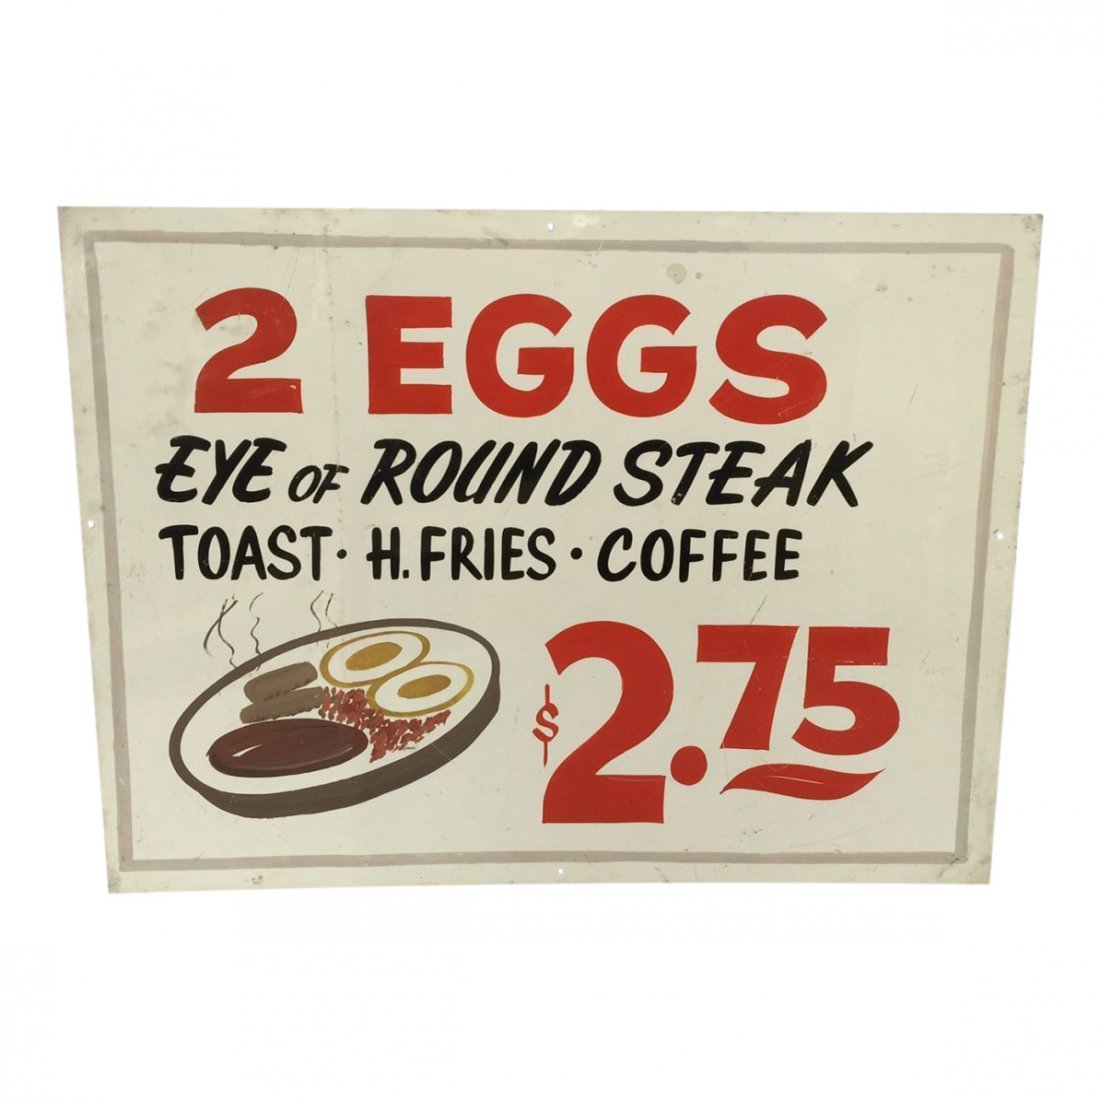 Colorful Breakfast Diner Sign, 1960s